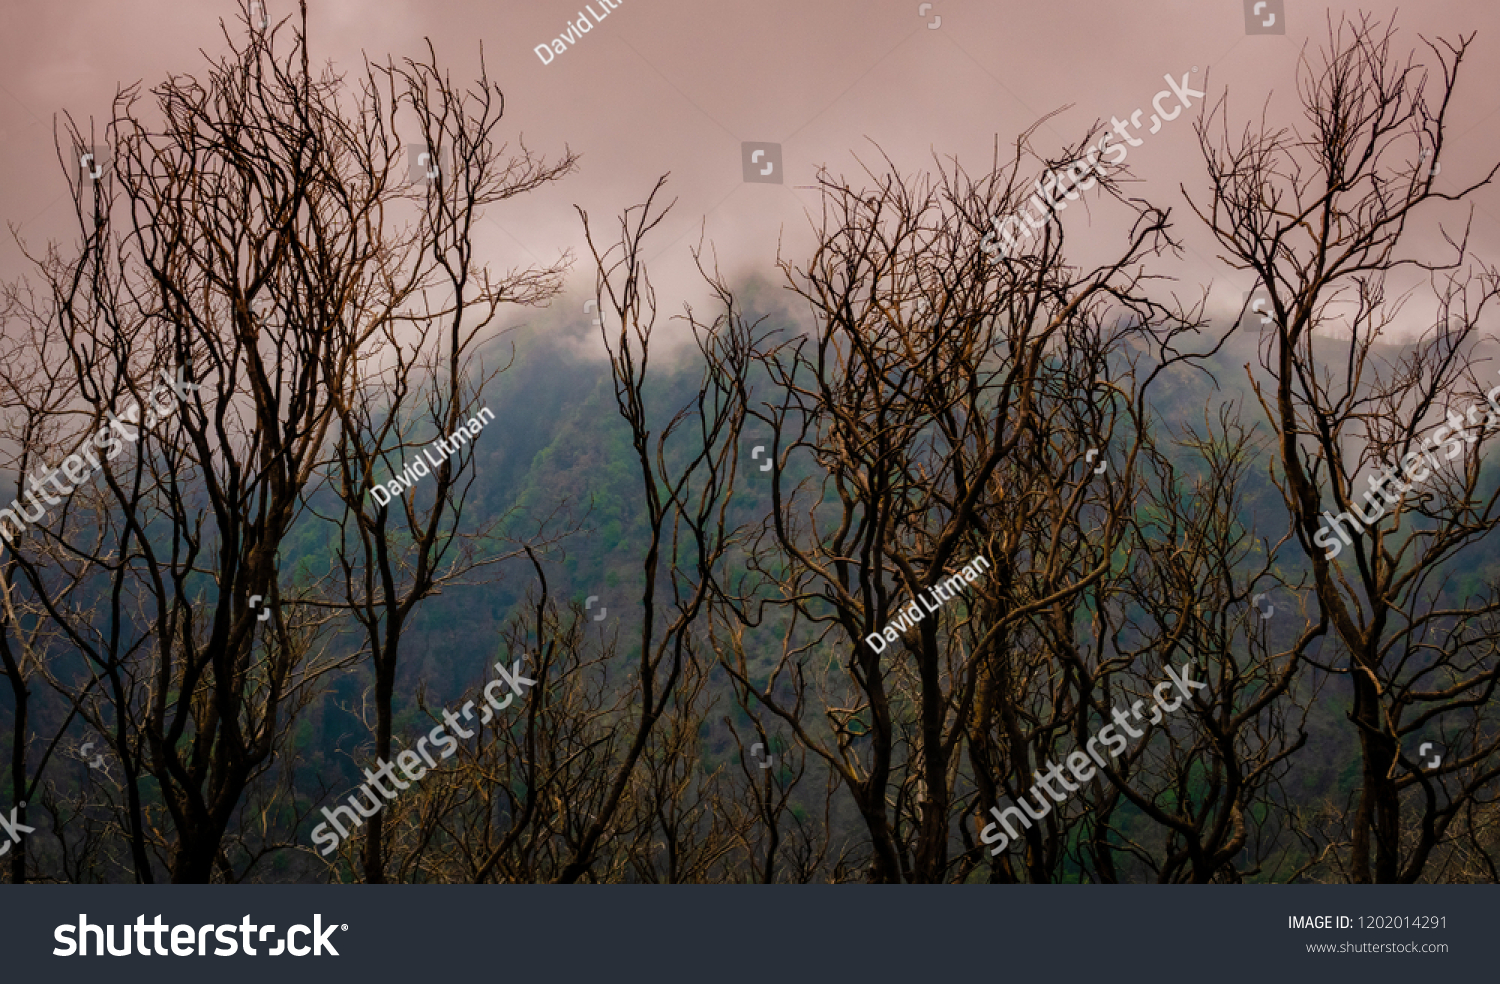 Clouds descend from above, as a storm moves in at dusk over a burned out forest at the base of Mount Vesuvius, in the Campania region of southern Italy.